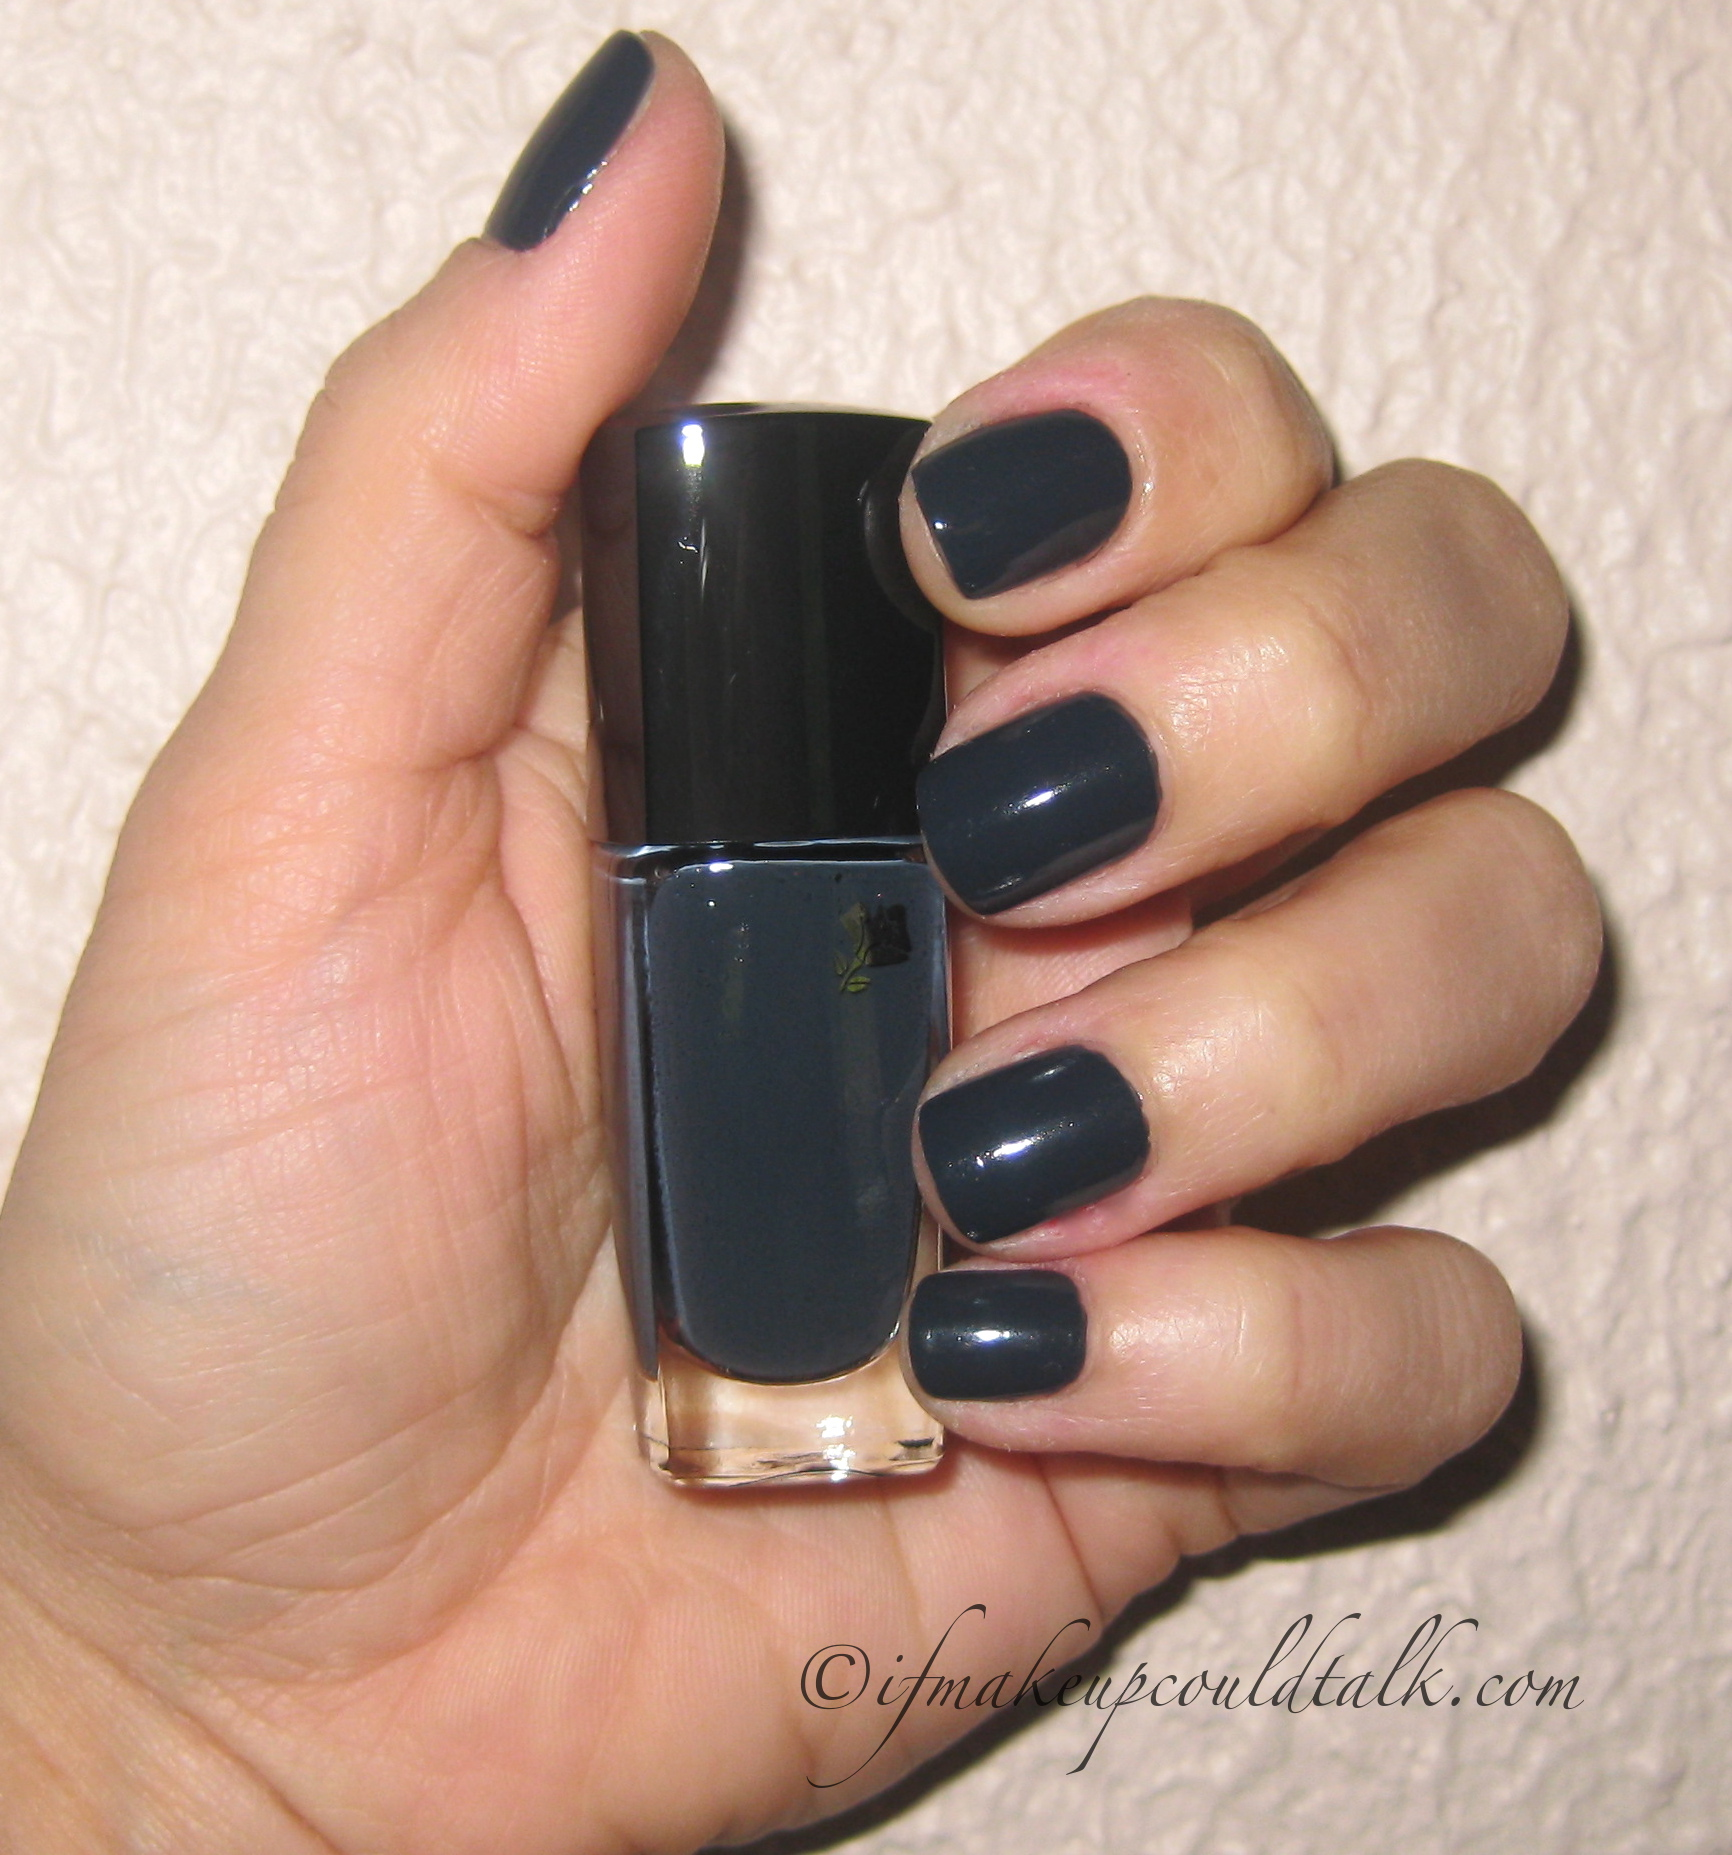 lancome noir caviar 585n vernis in love review and photos if makeup could talk. Black Bedroom Furniture Sets. Home Design Ideas